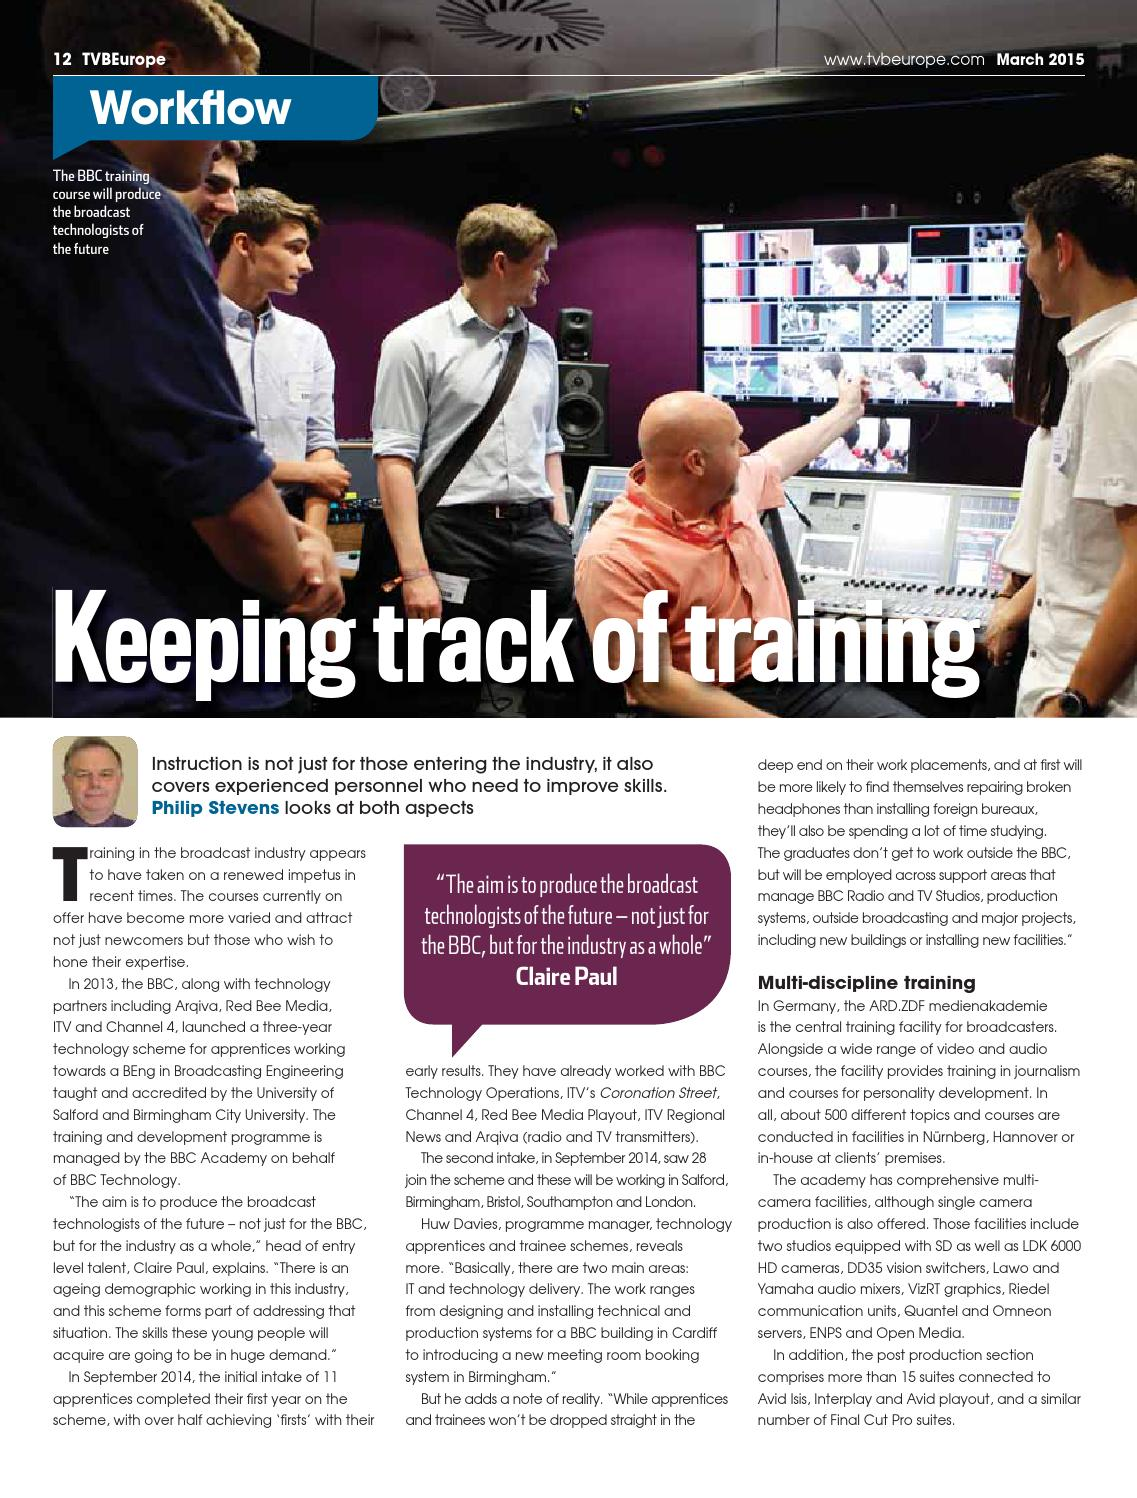 TVBEurope March 2015 Digital Edition By Future PLC